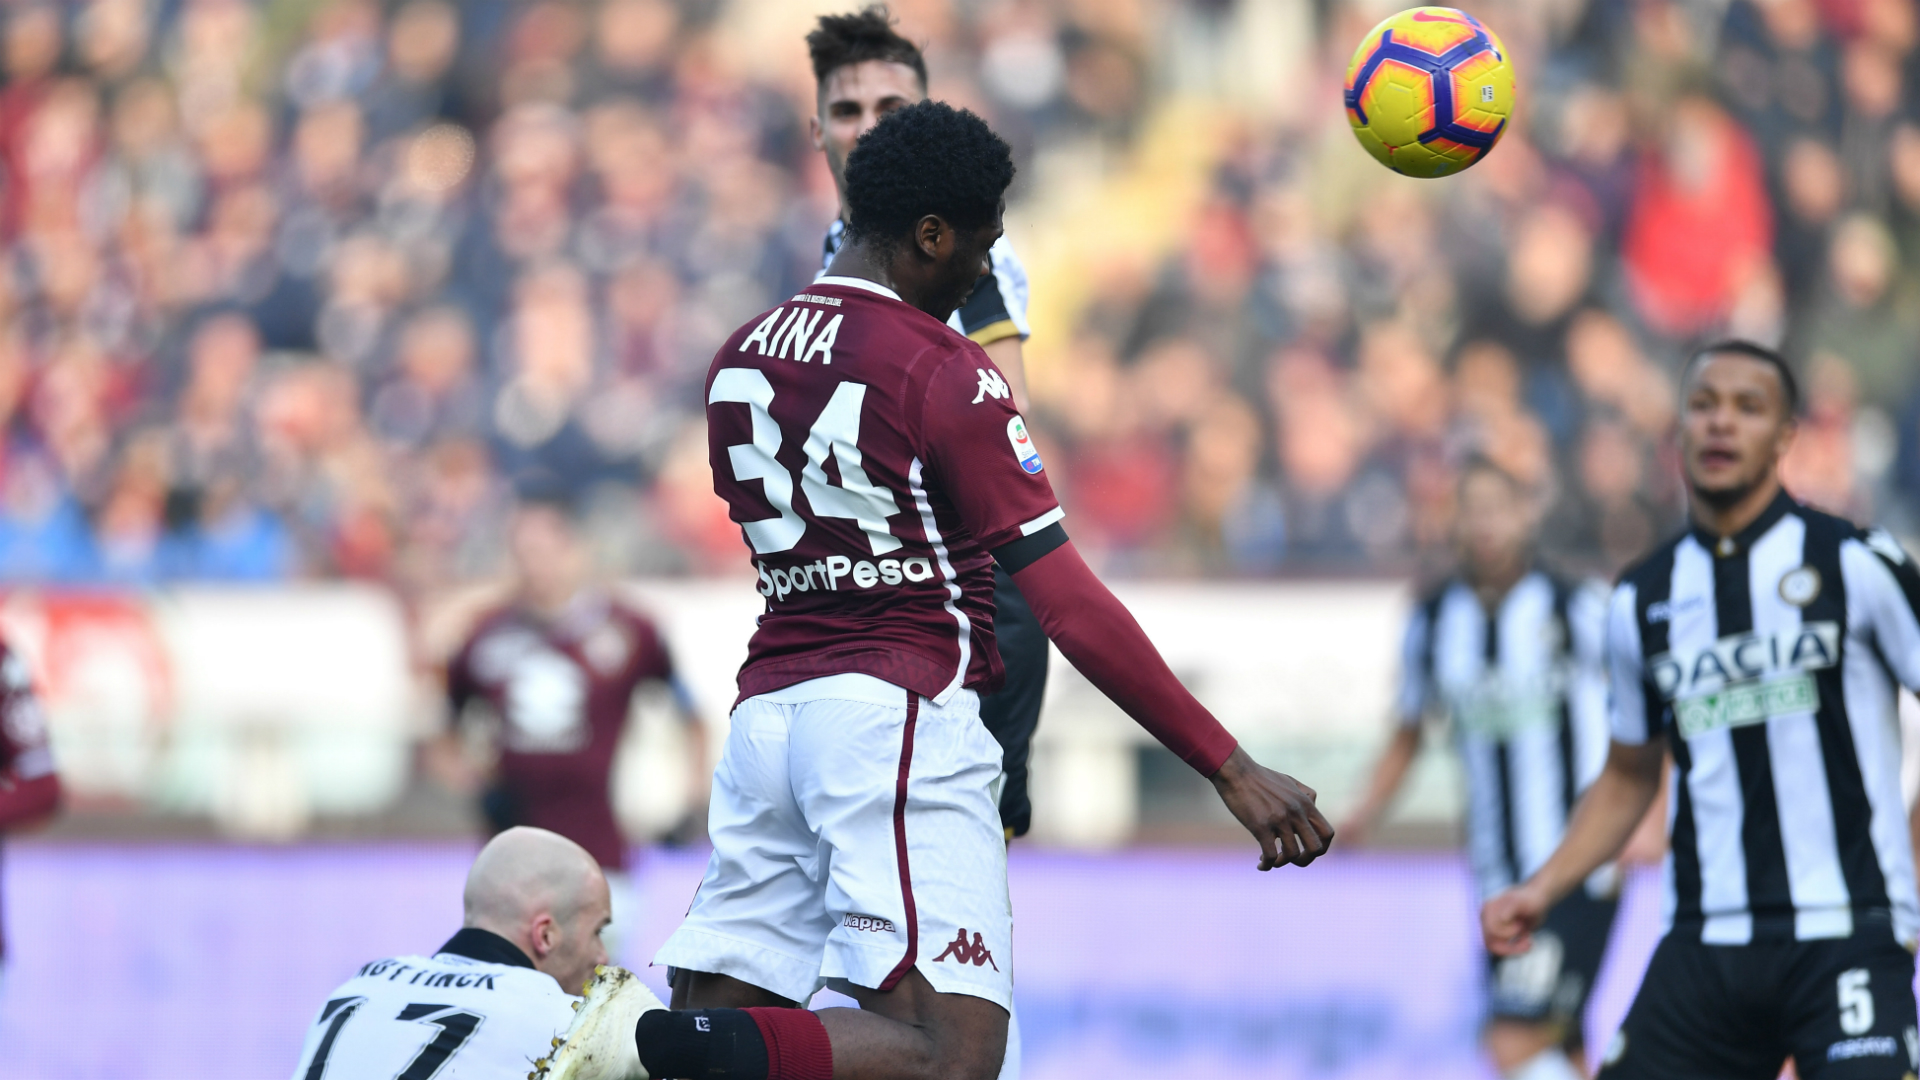 Ola Aina: Torino's 100% Serie A start ends with Lecce defeat